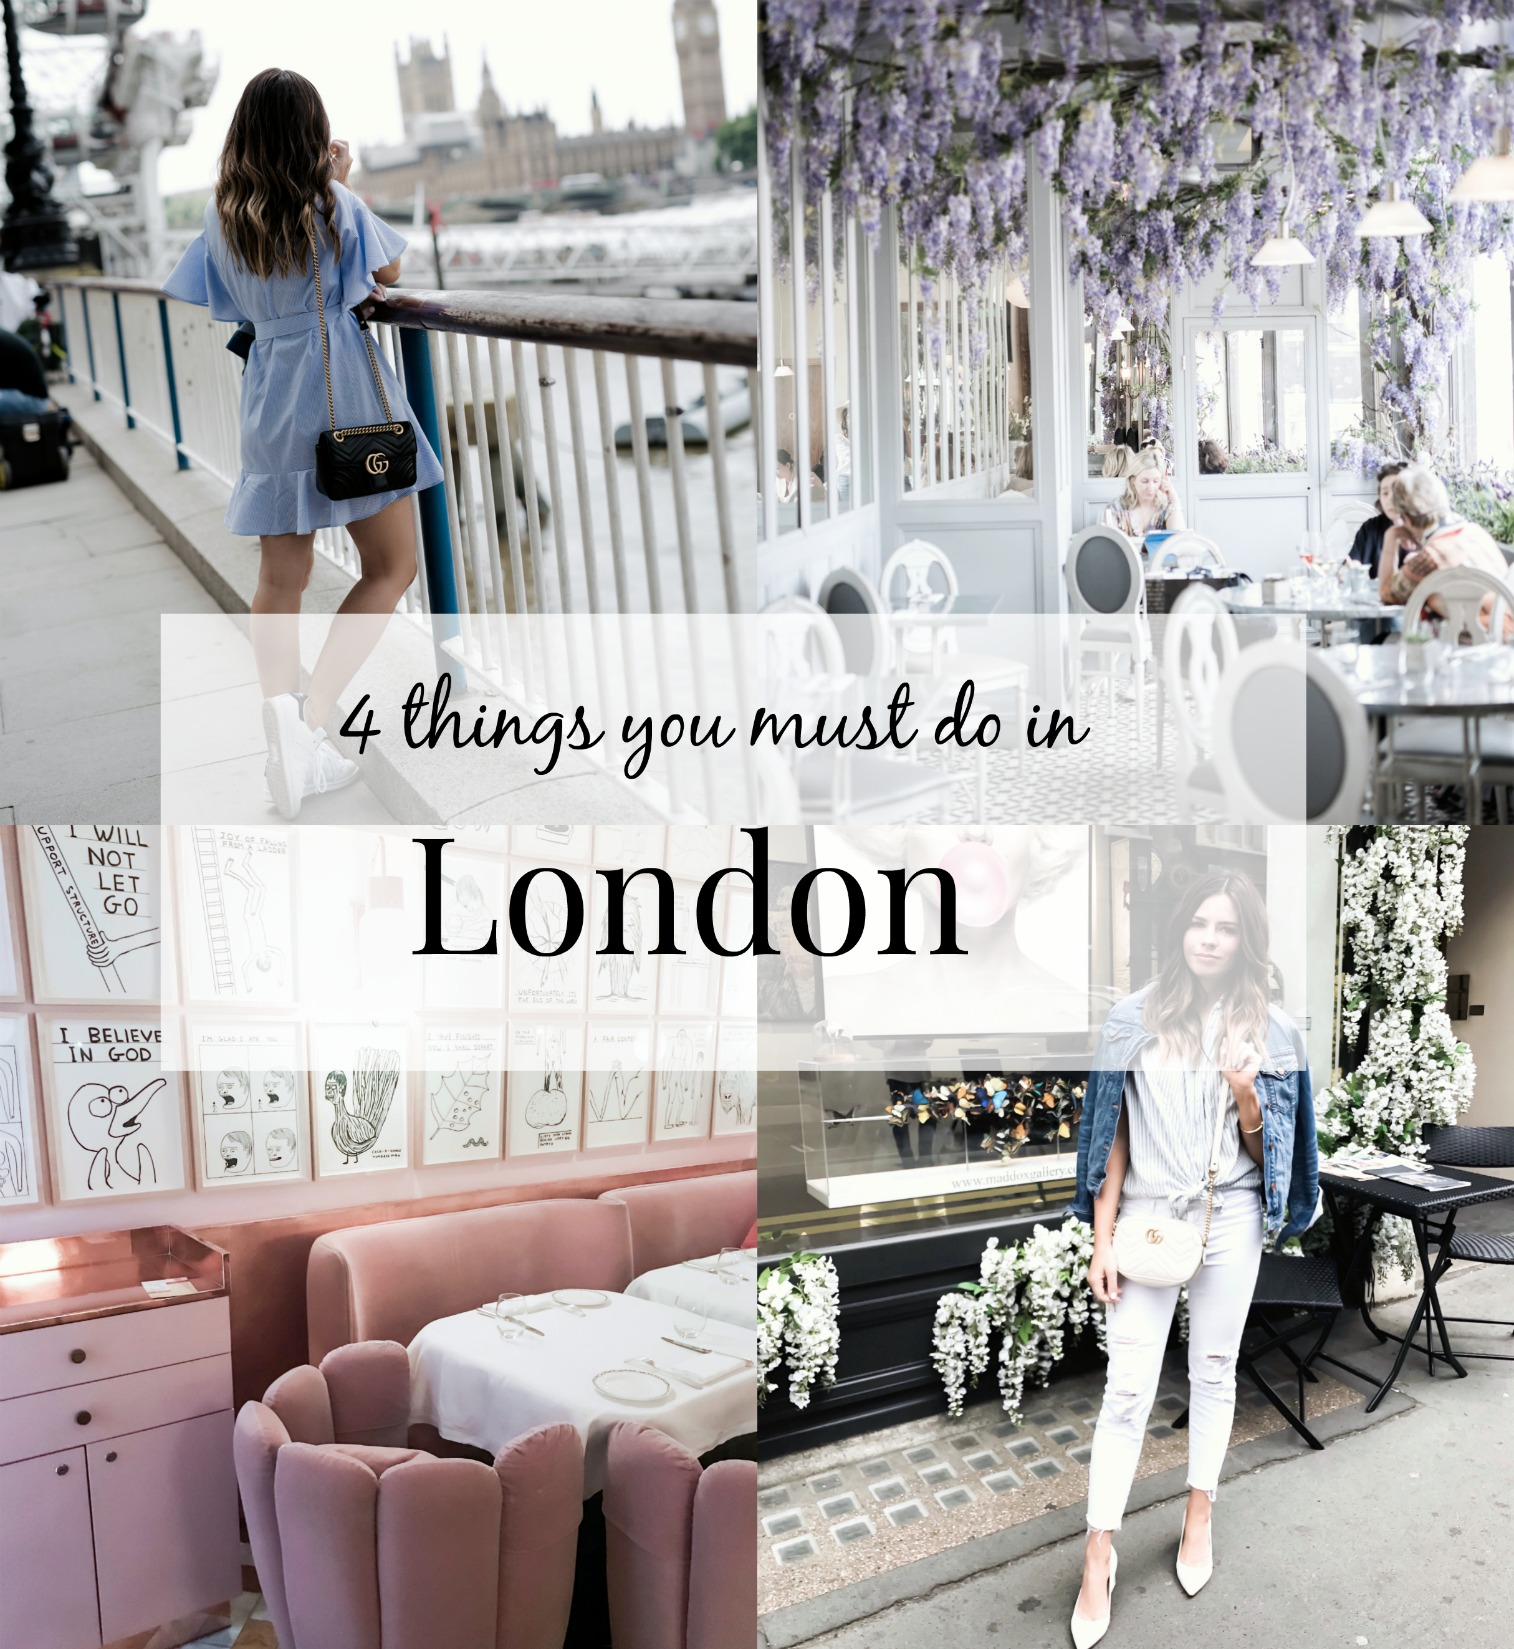 Tiffany Jais Houston fashion and lifestyle blogger | 4 things to do in London | London travel guide